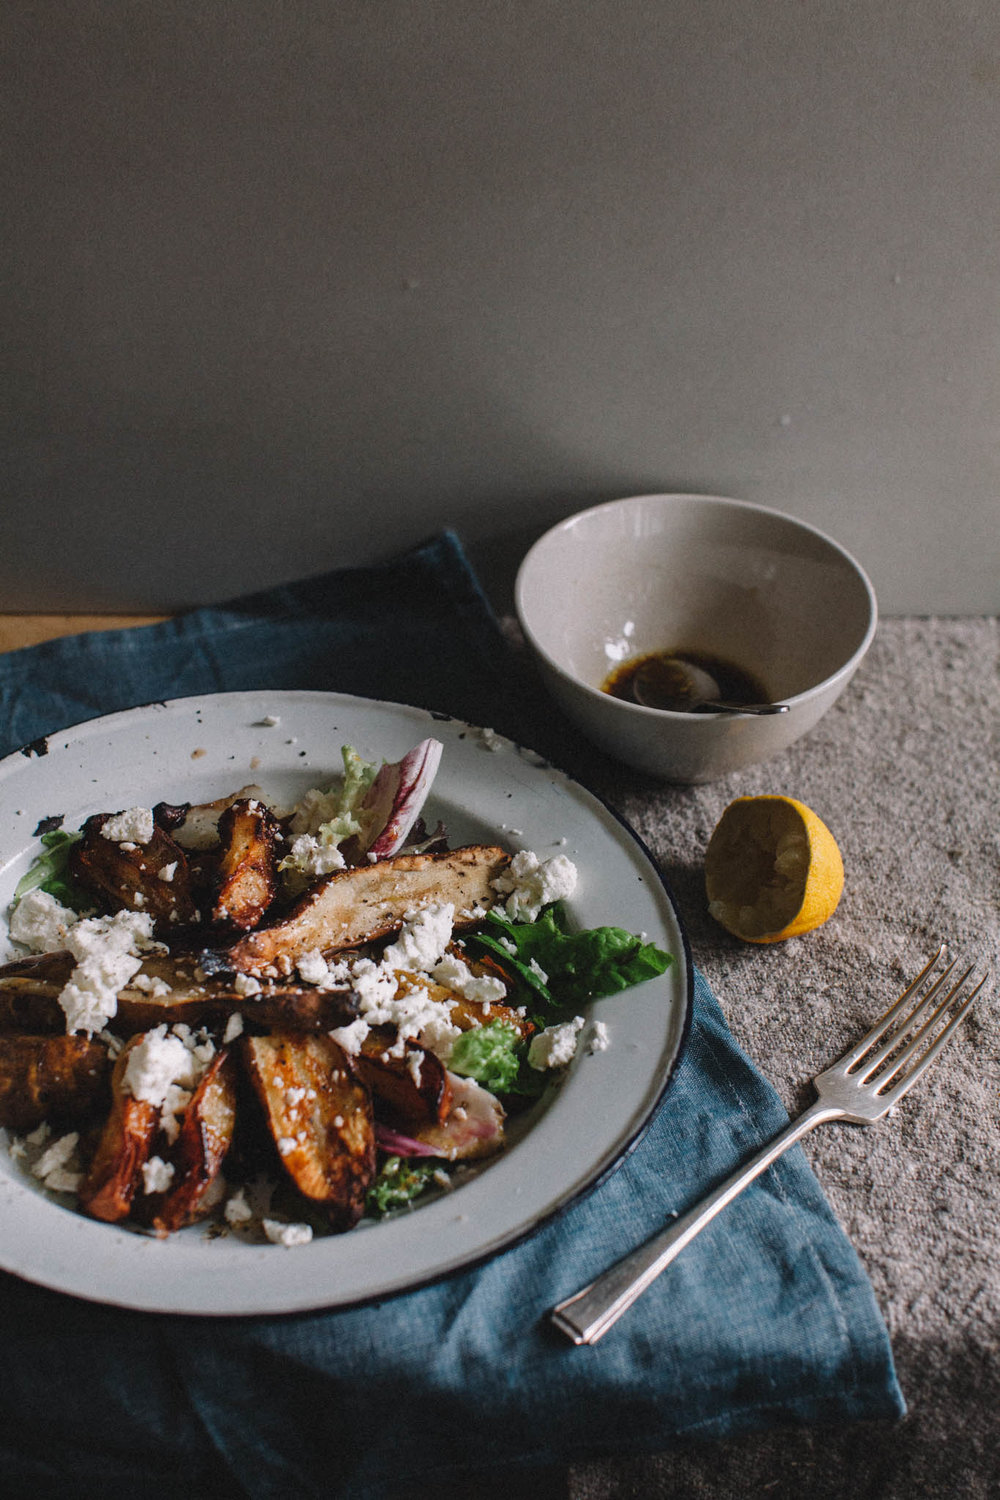 Jerusalem artichoke, pear and goats cheese winter salad. Retreat // Food and lifestyle blog